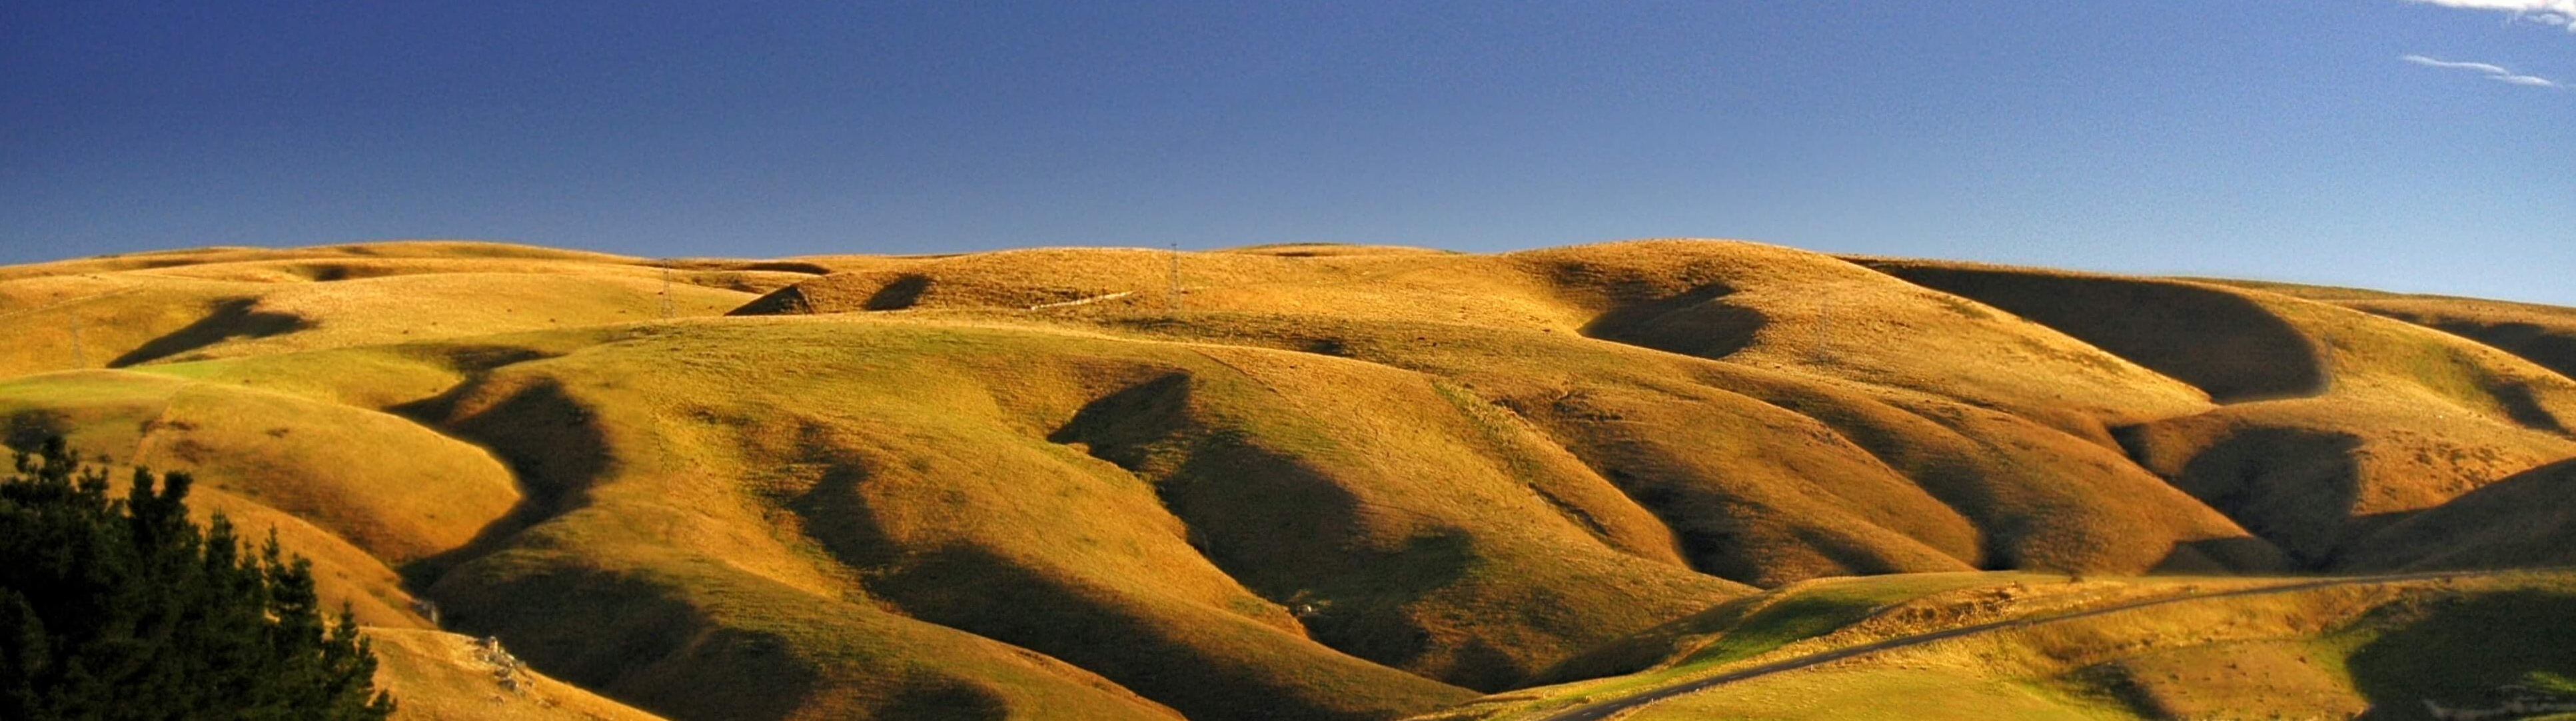 Strath Taieri in Early Autumn by Stephen Murphy